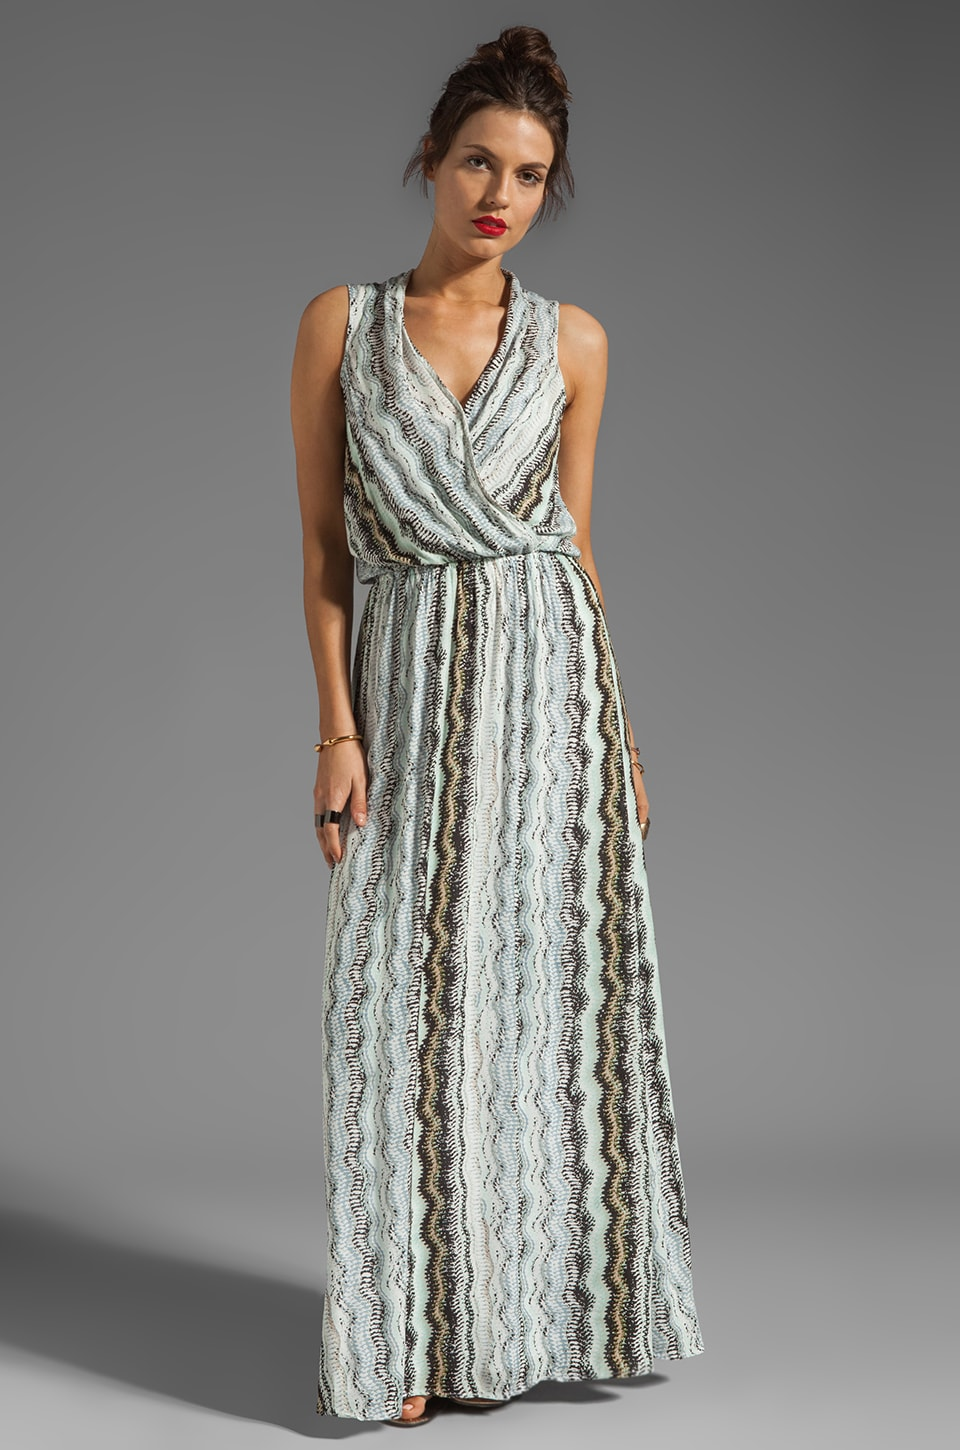 Ella Moss Zuma Print Maxi Dress in Neutral